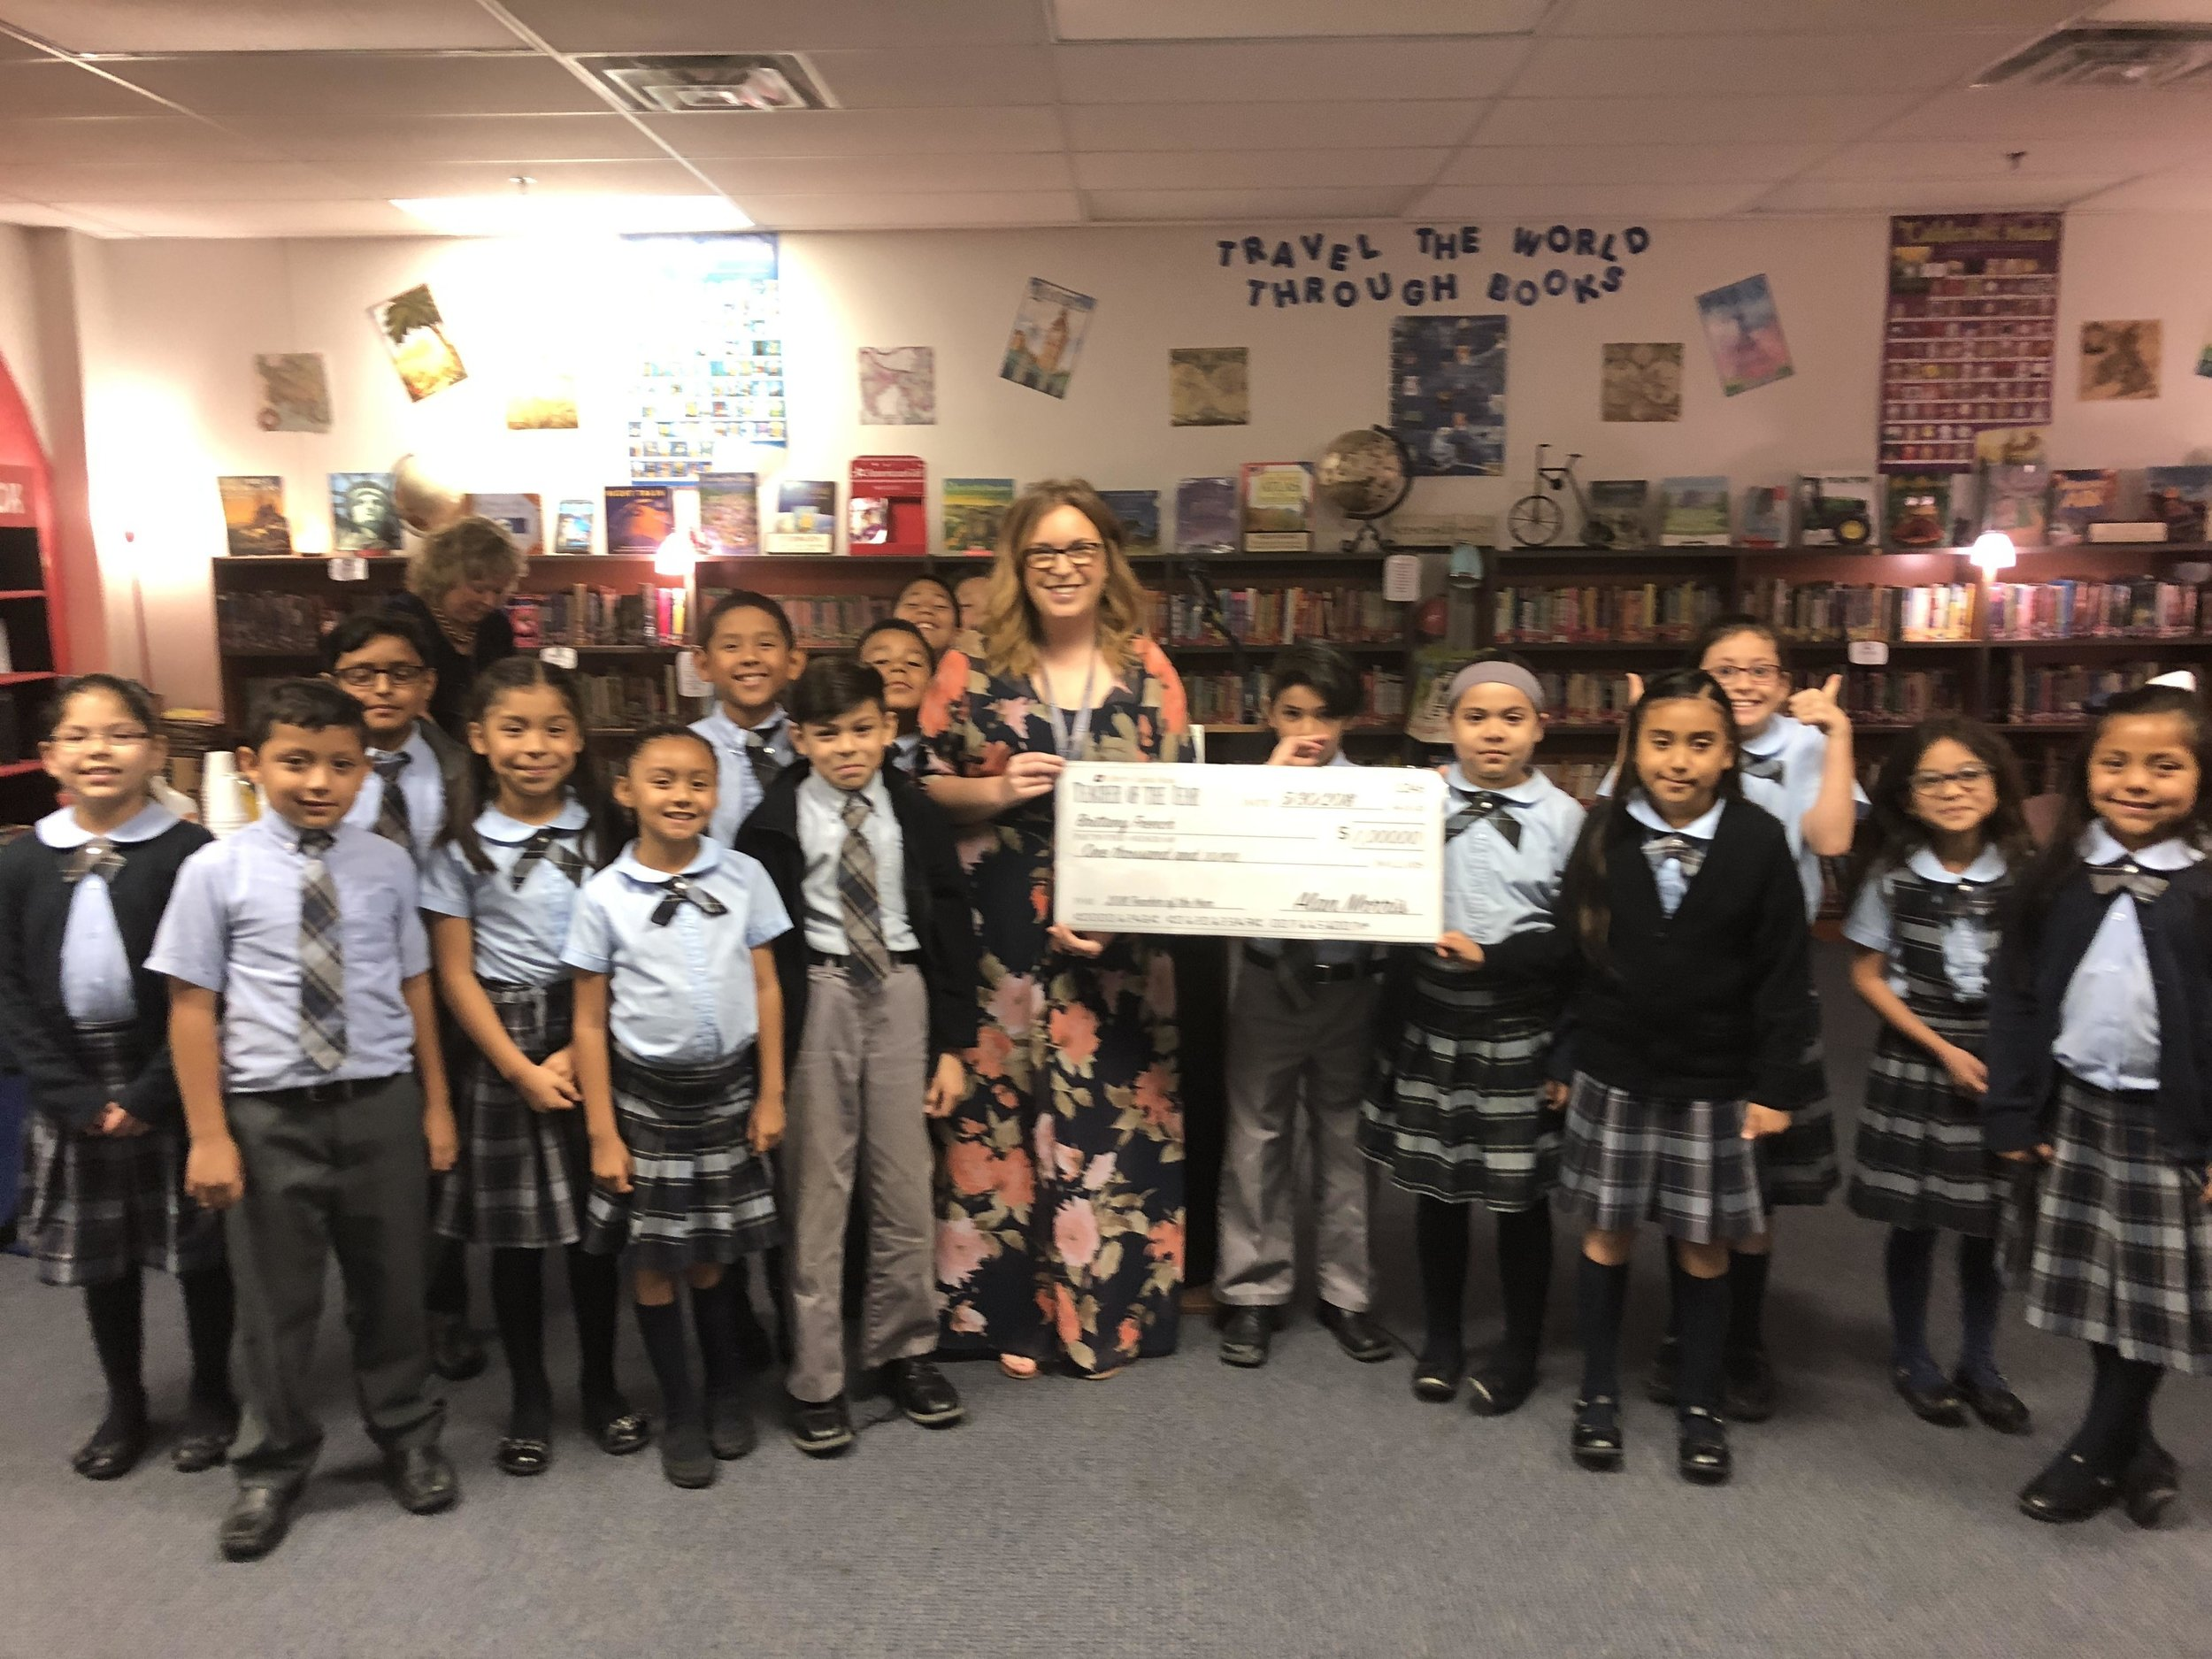 Liberty Capital Bank Teacher of the Year 2018 Award Ceremony